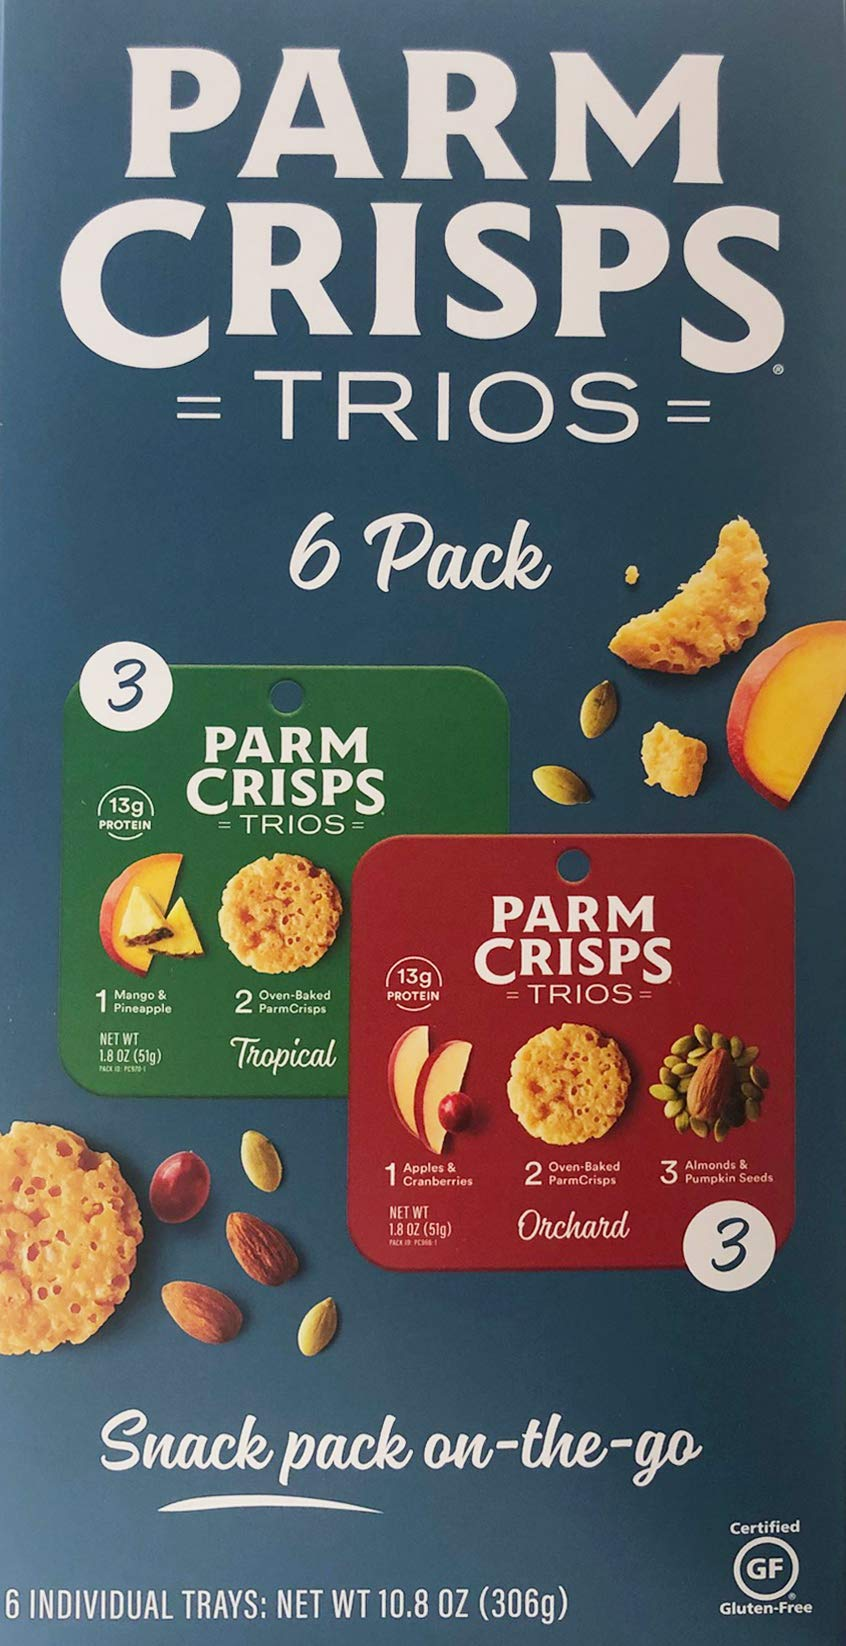 Parm Crisps Trios New On-the-go Snack Pack 10.8oz,1 Box (6 Individual Trays 10.8oz)